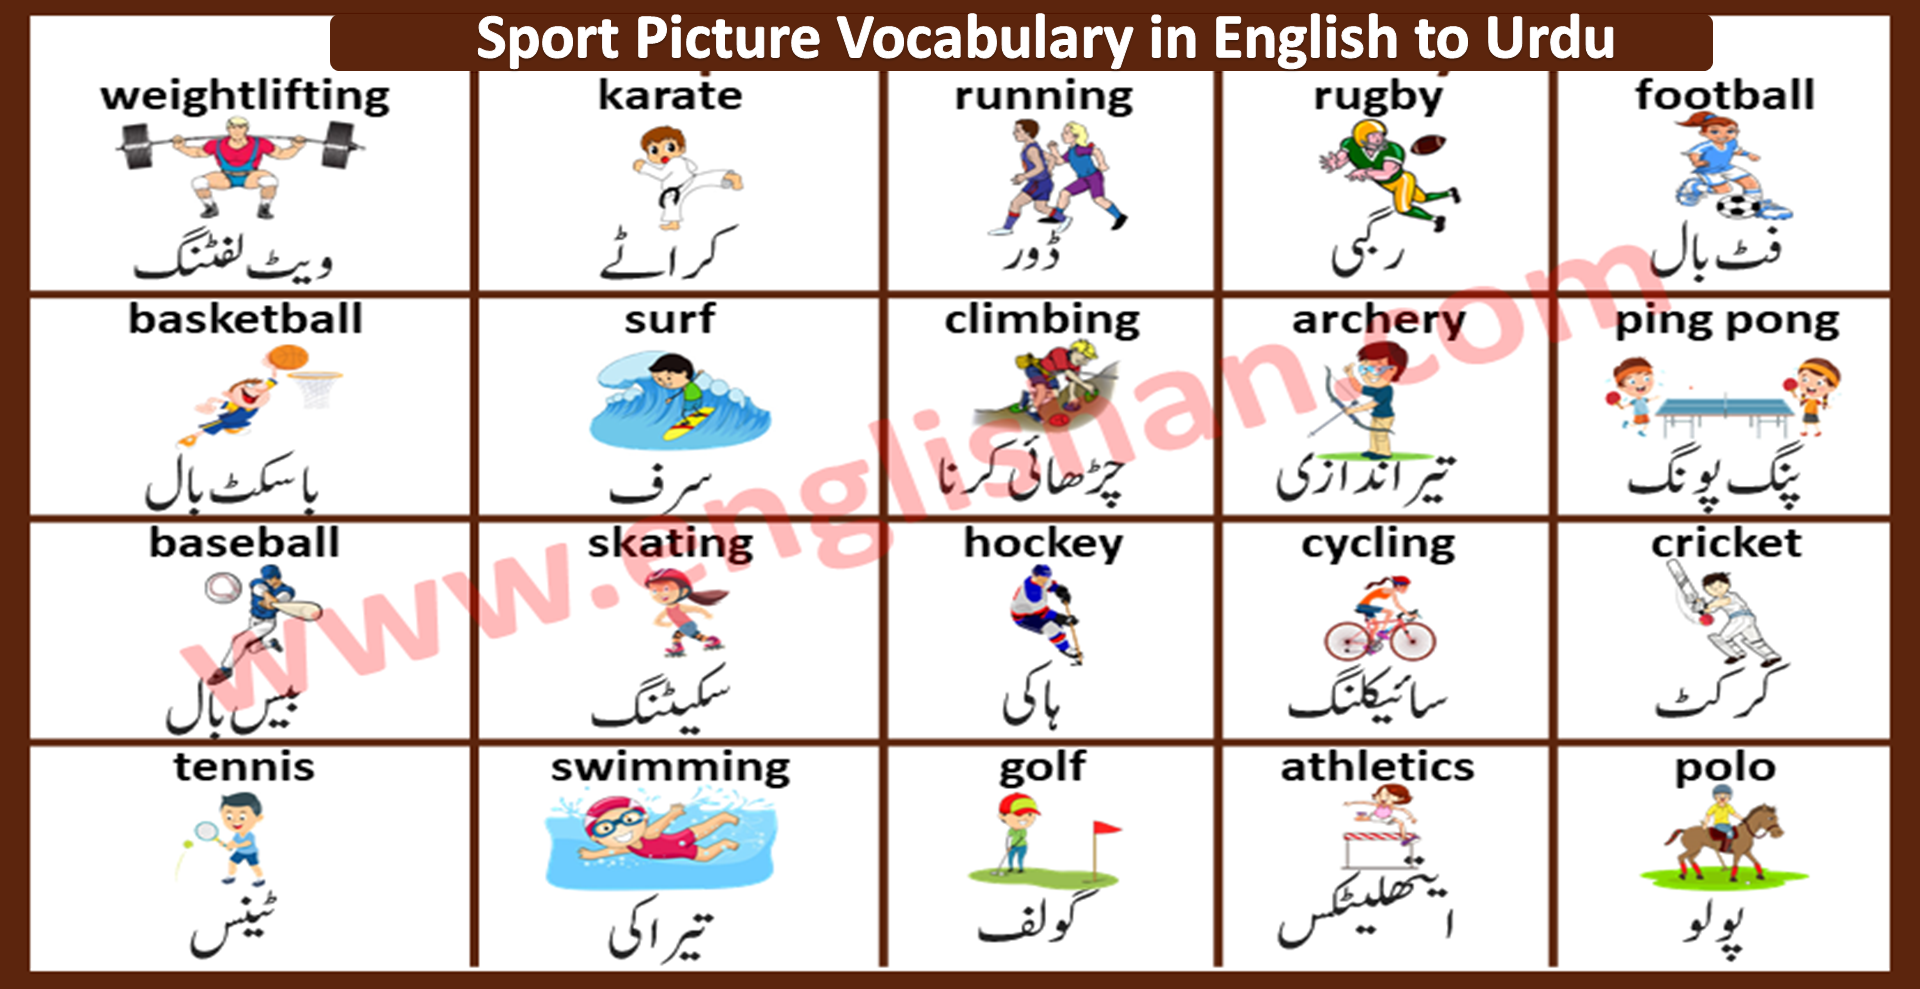 Sport Picture Vocabulary in English to Urdu